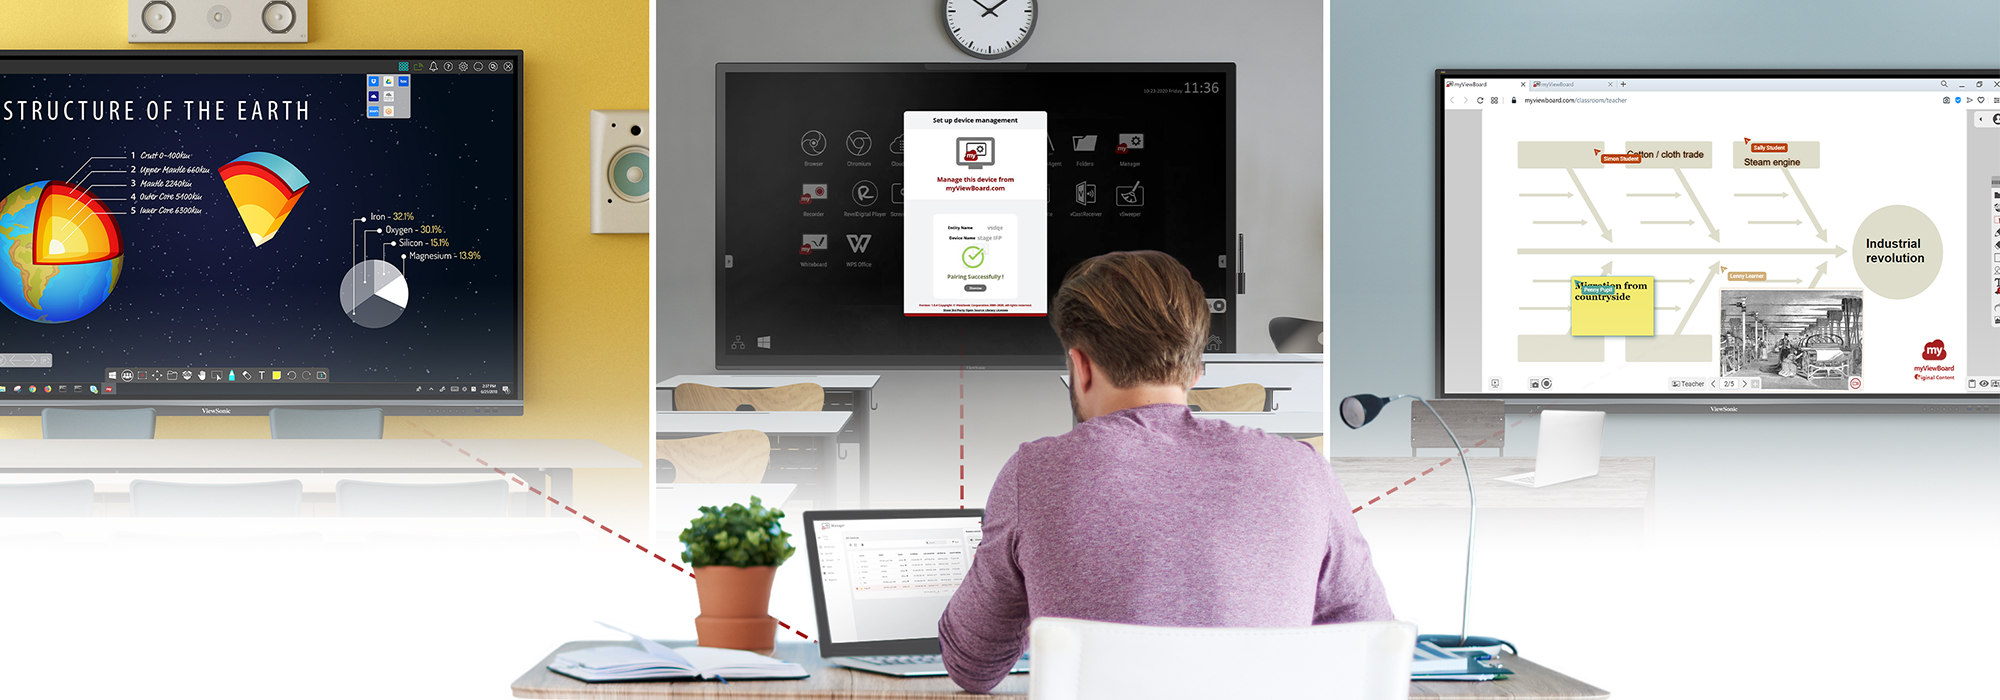 ViewSonic myViewBoard Suite Leads Evolution of Learning Environments with Expanded Tools for Collaborative Classroom Transitions